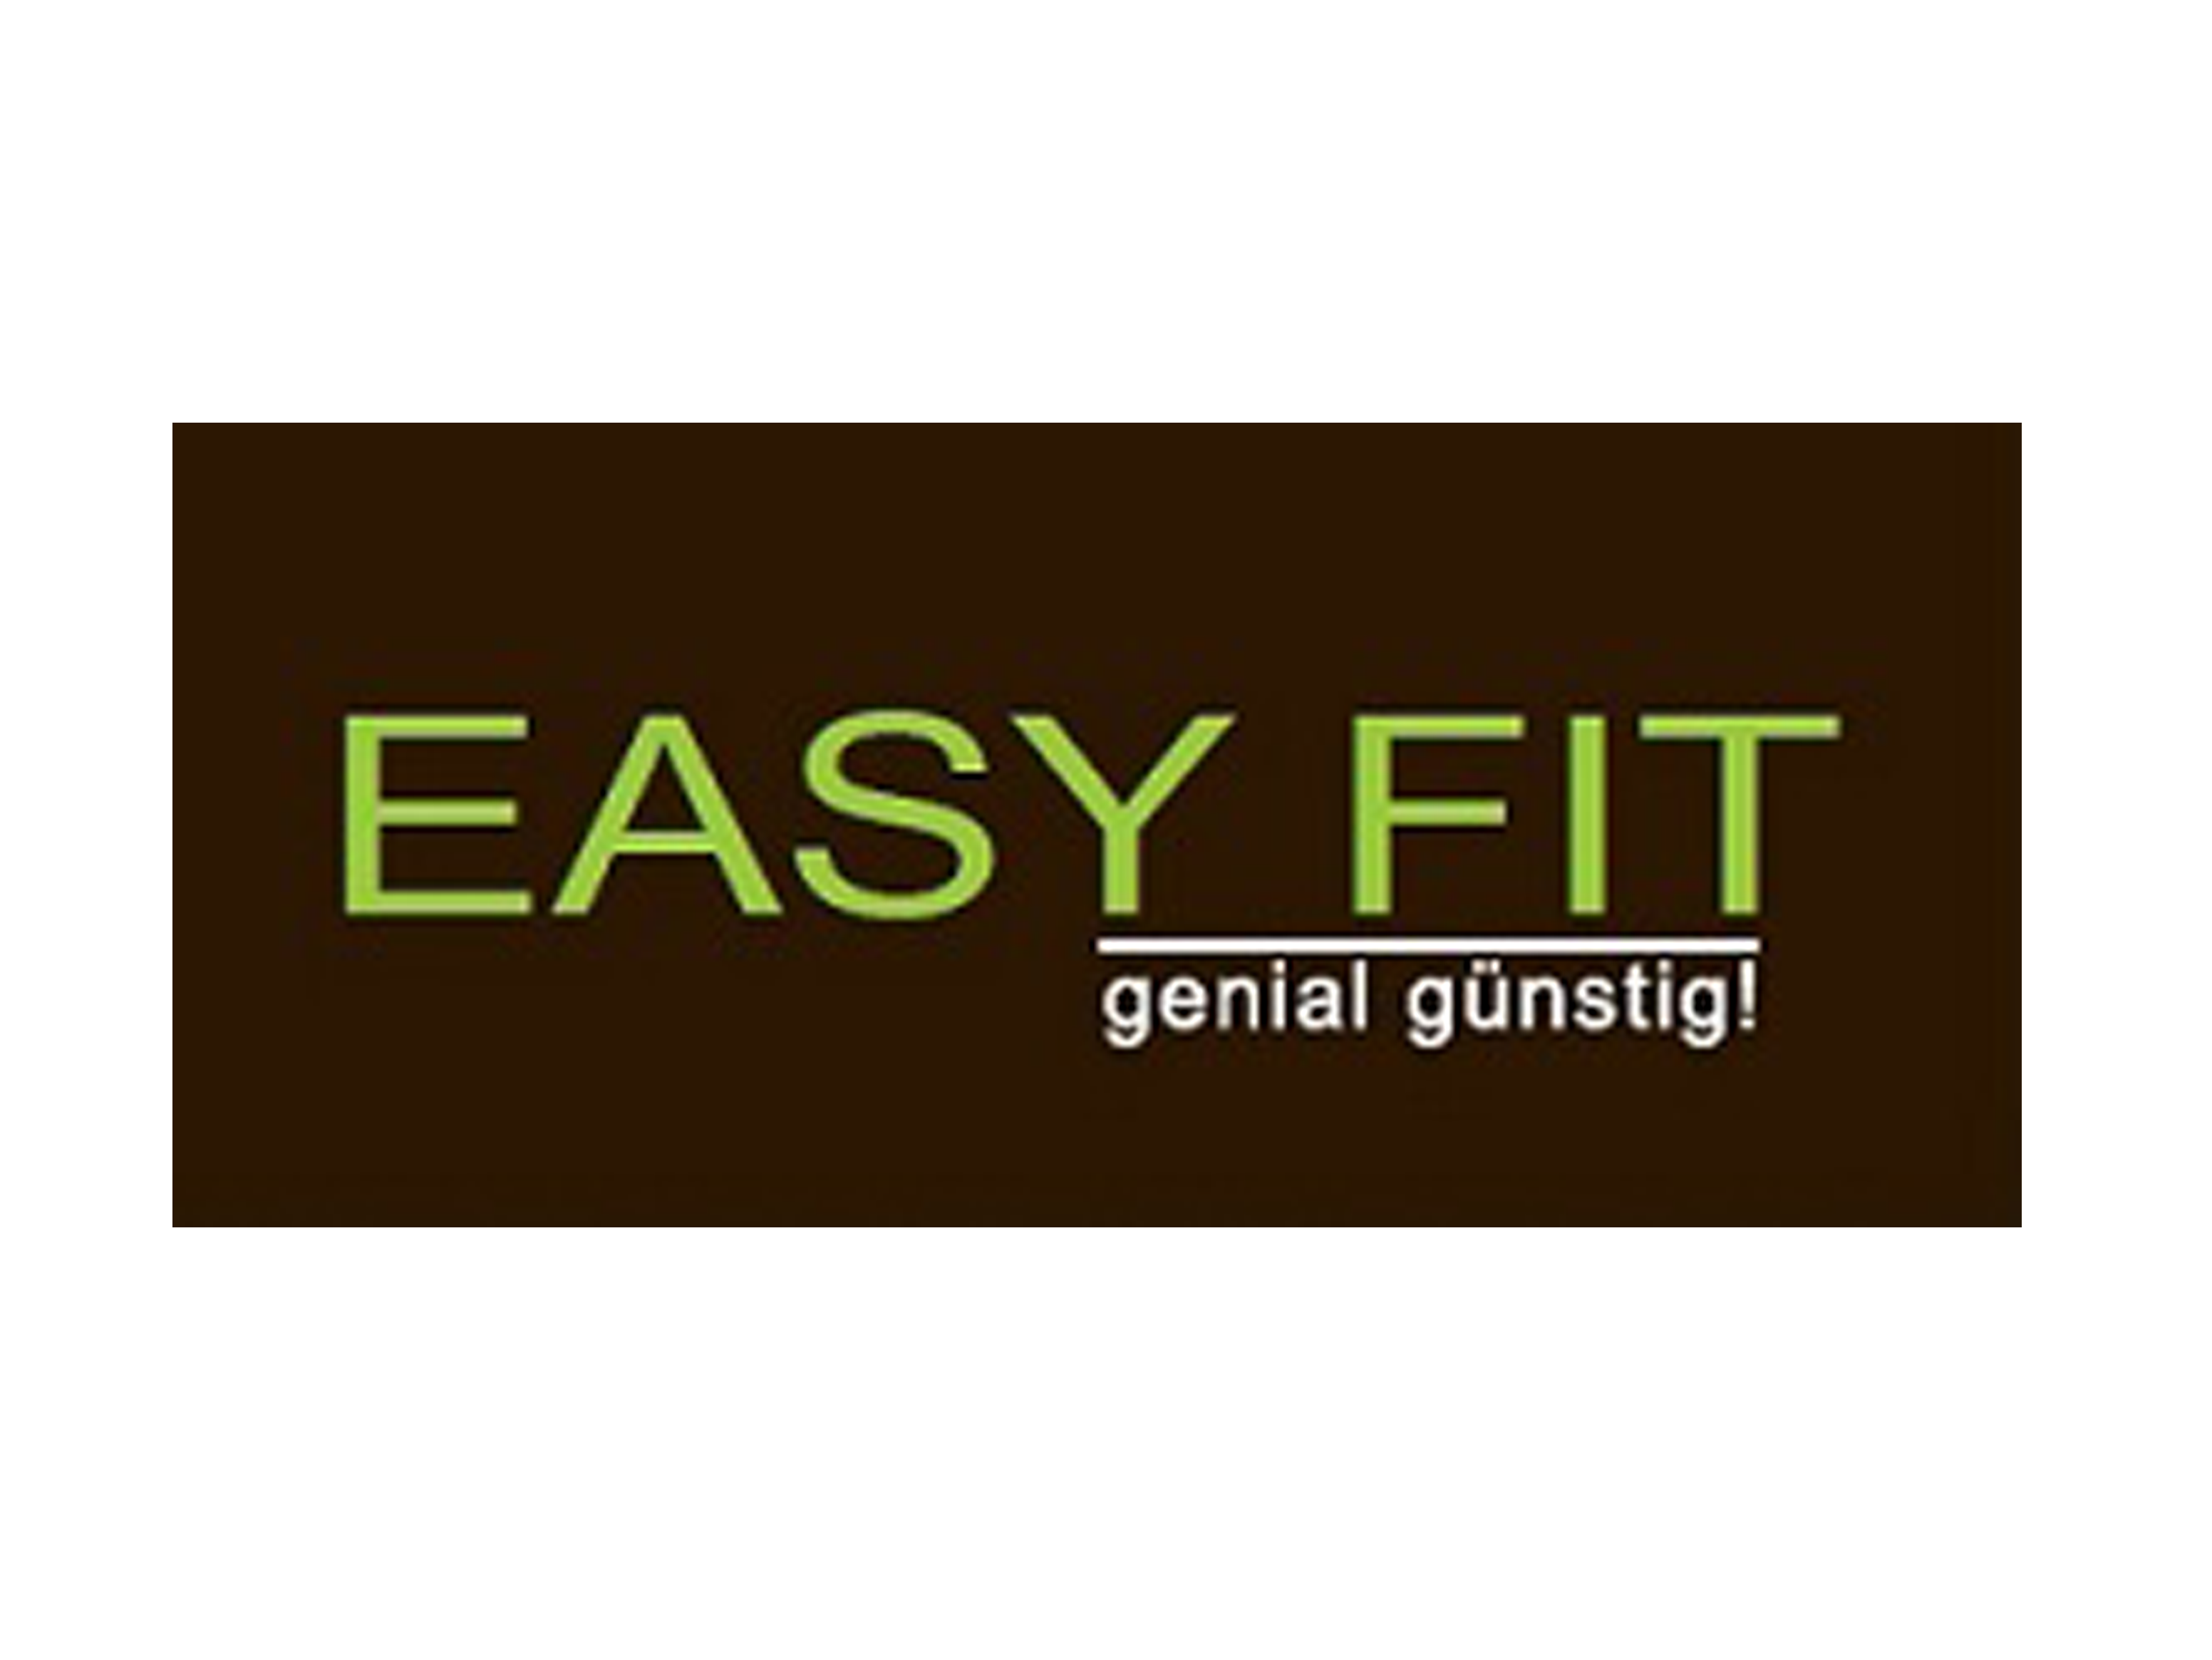 Easy Fit